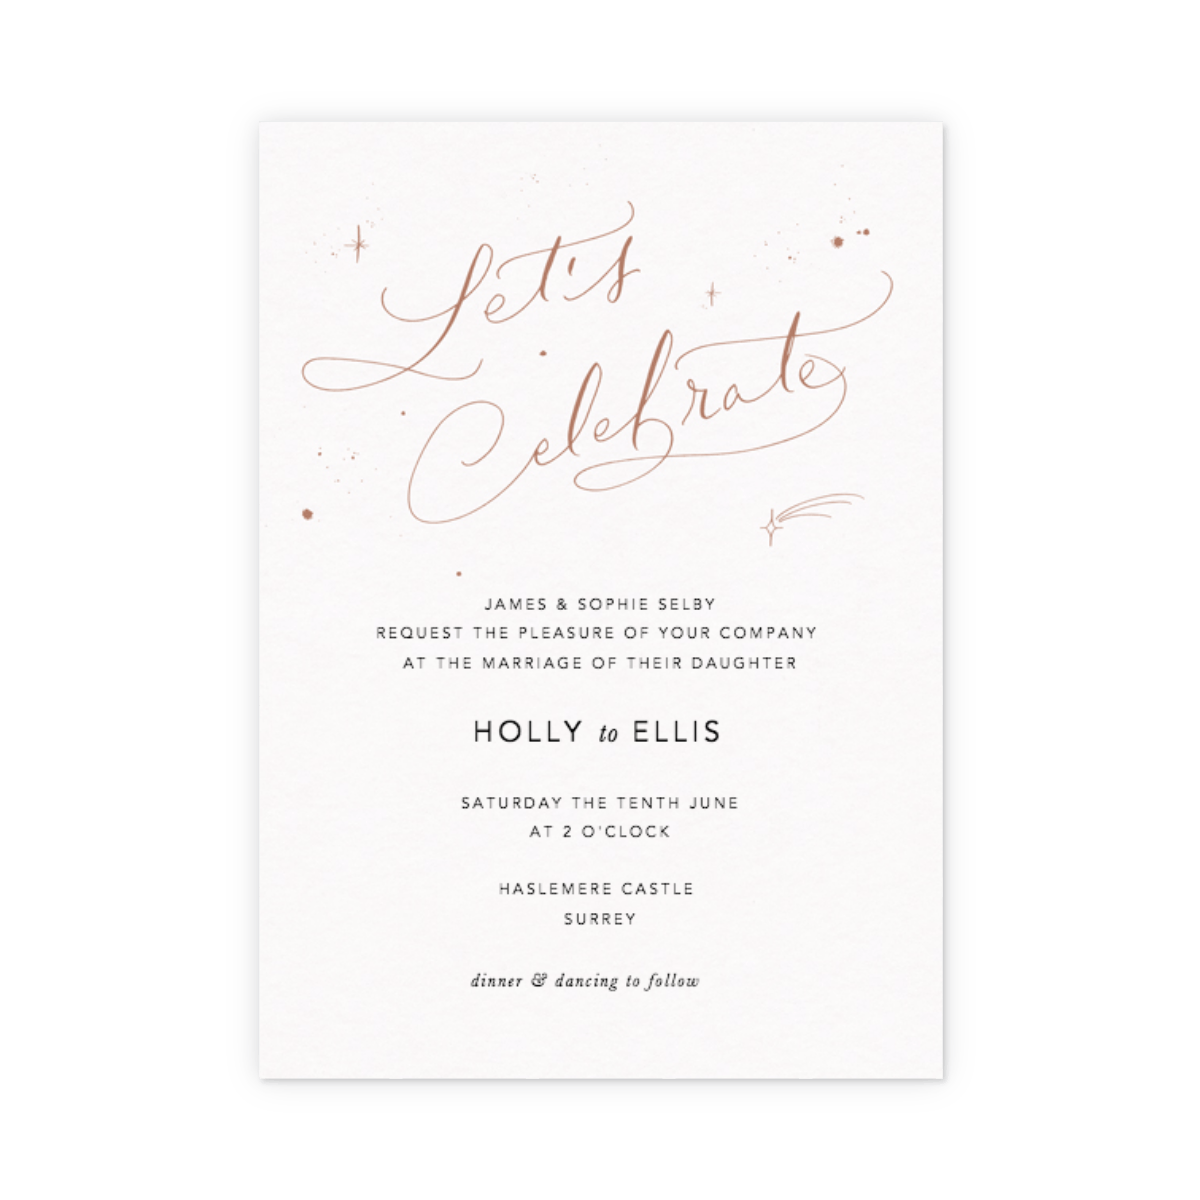 Https%3a%2f%2fwww.papier.com%2fproduct image%2f25790%2f4%2flet s celebrate starry bronze 6441 front 1501581892.png?ixlib=rb 1.1